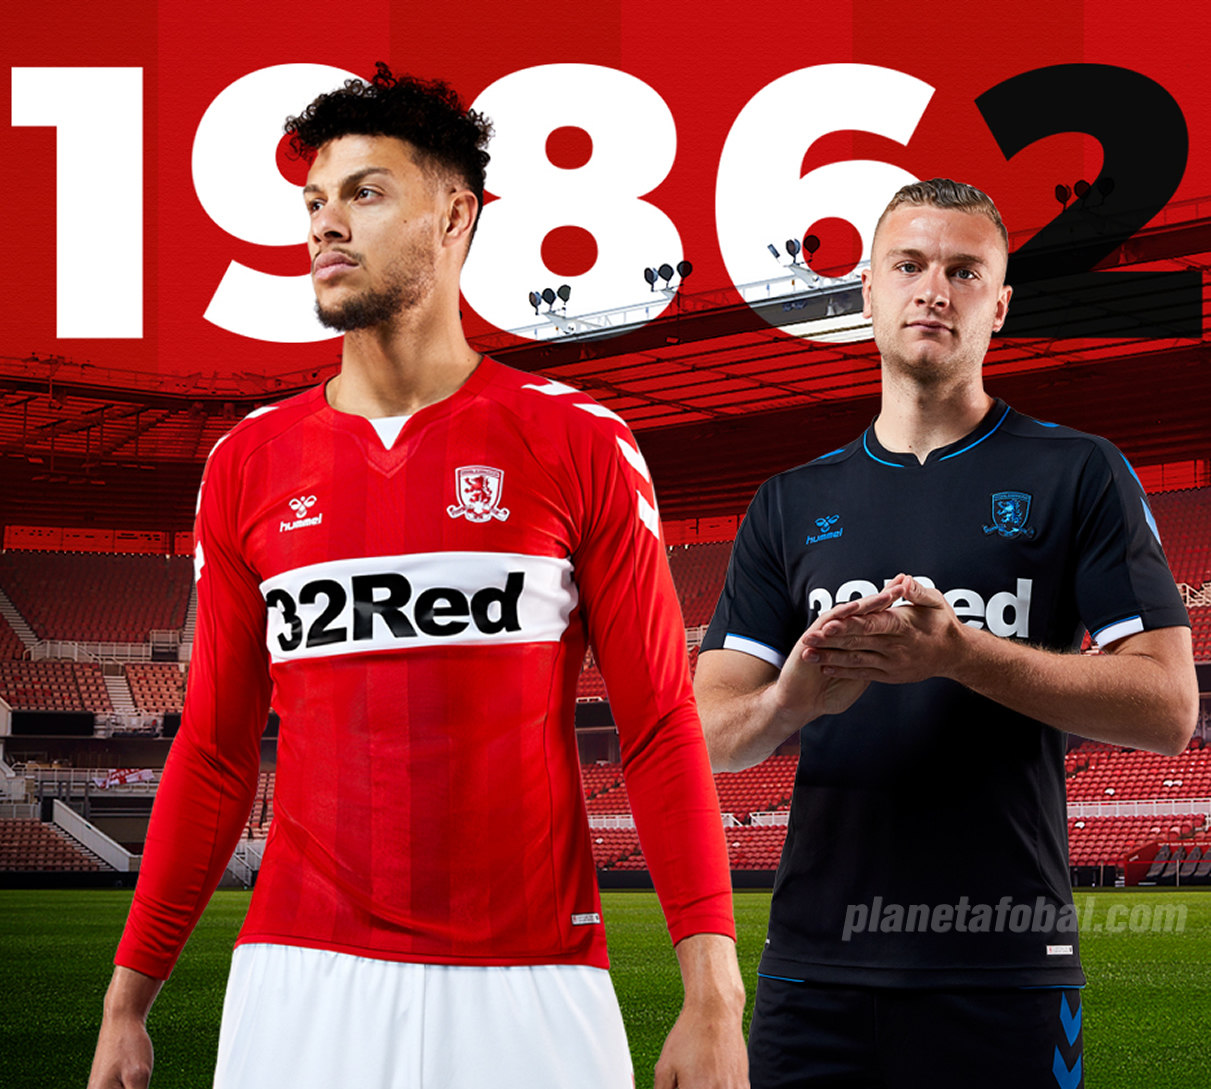 Camisetas Hummel 2018/19 del Middlesbrough FC | Foto Web Oficial